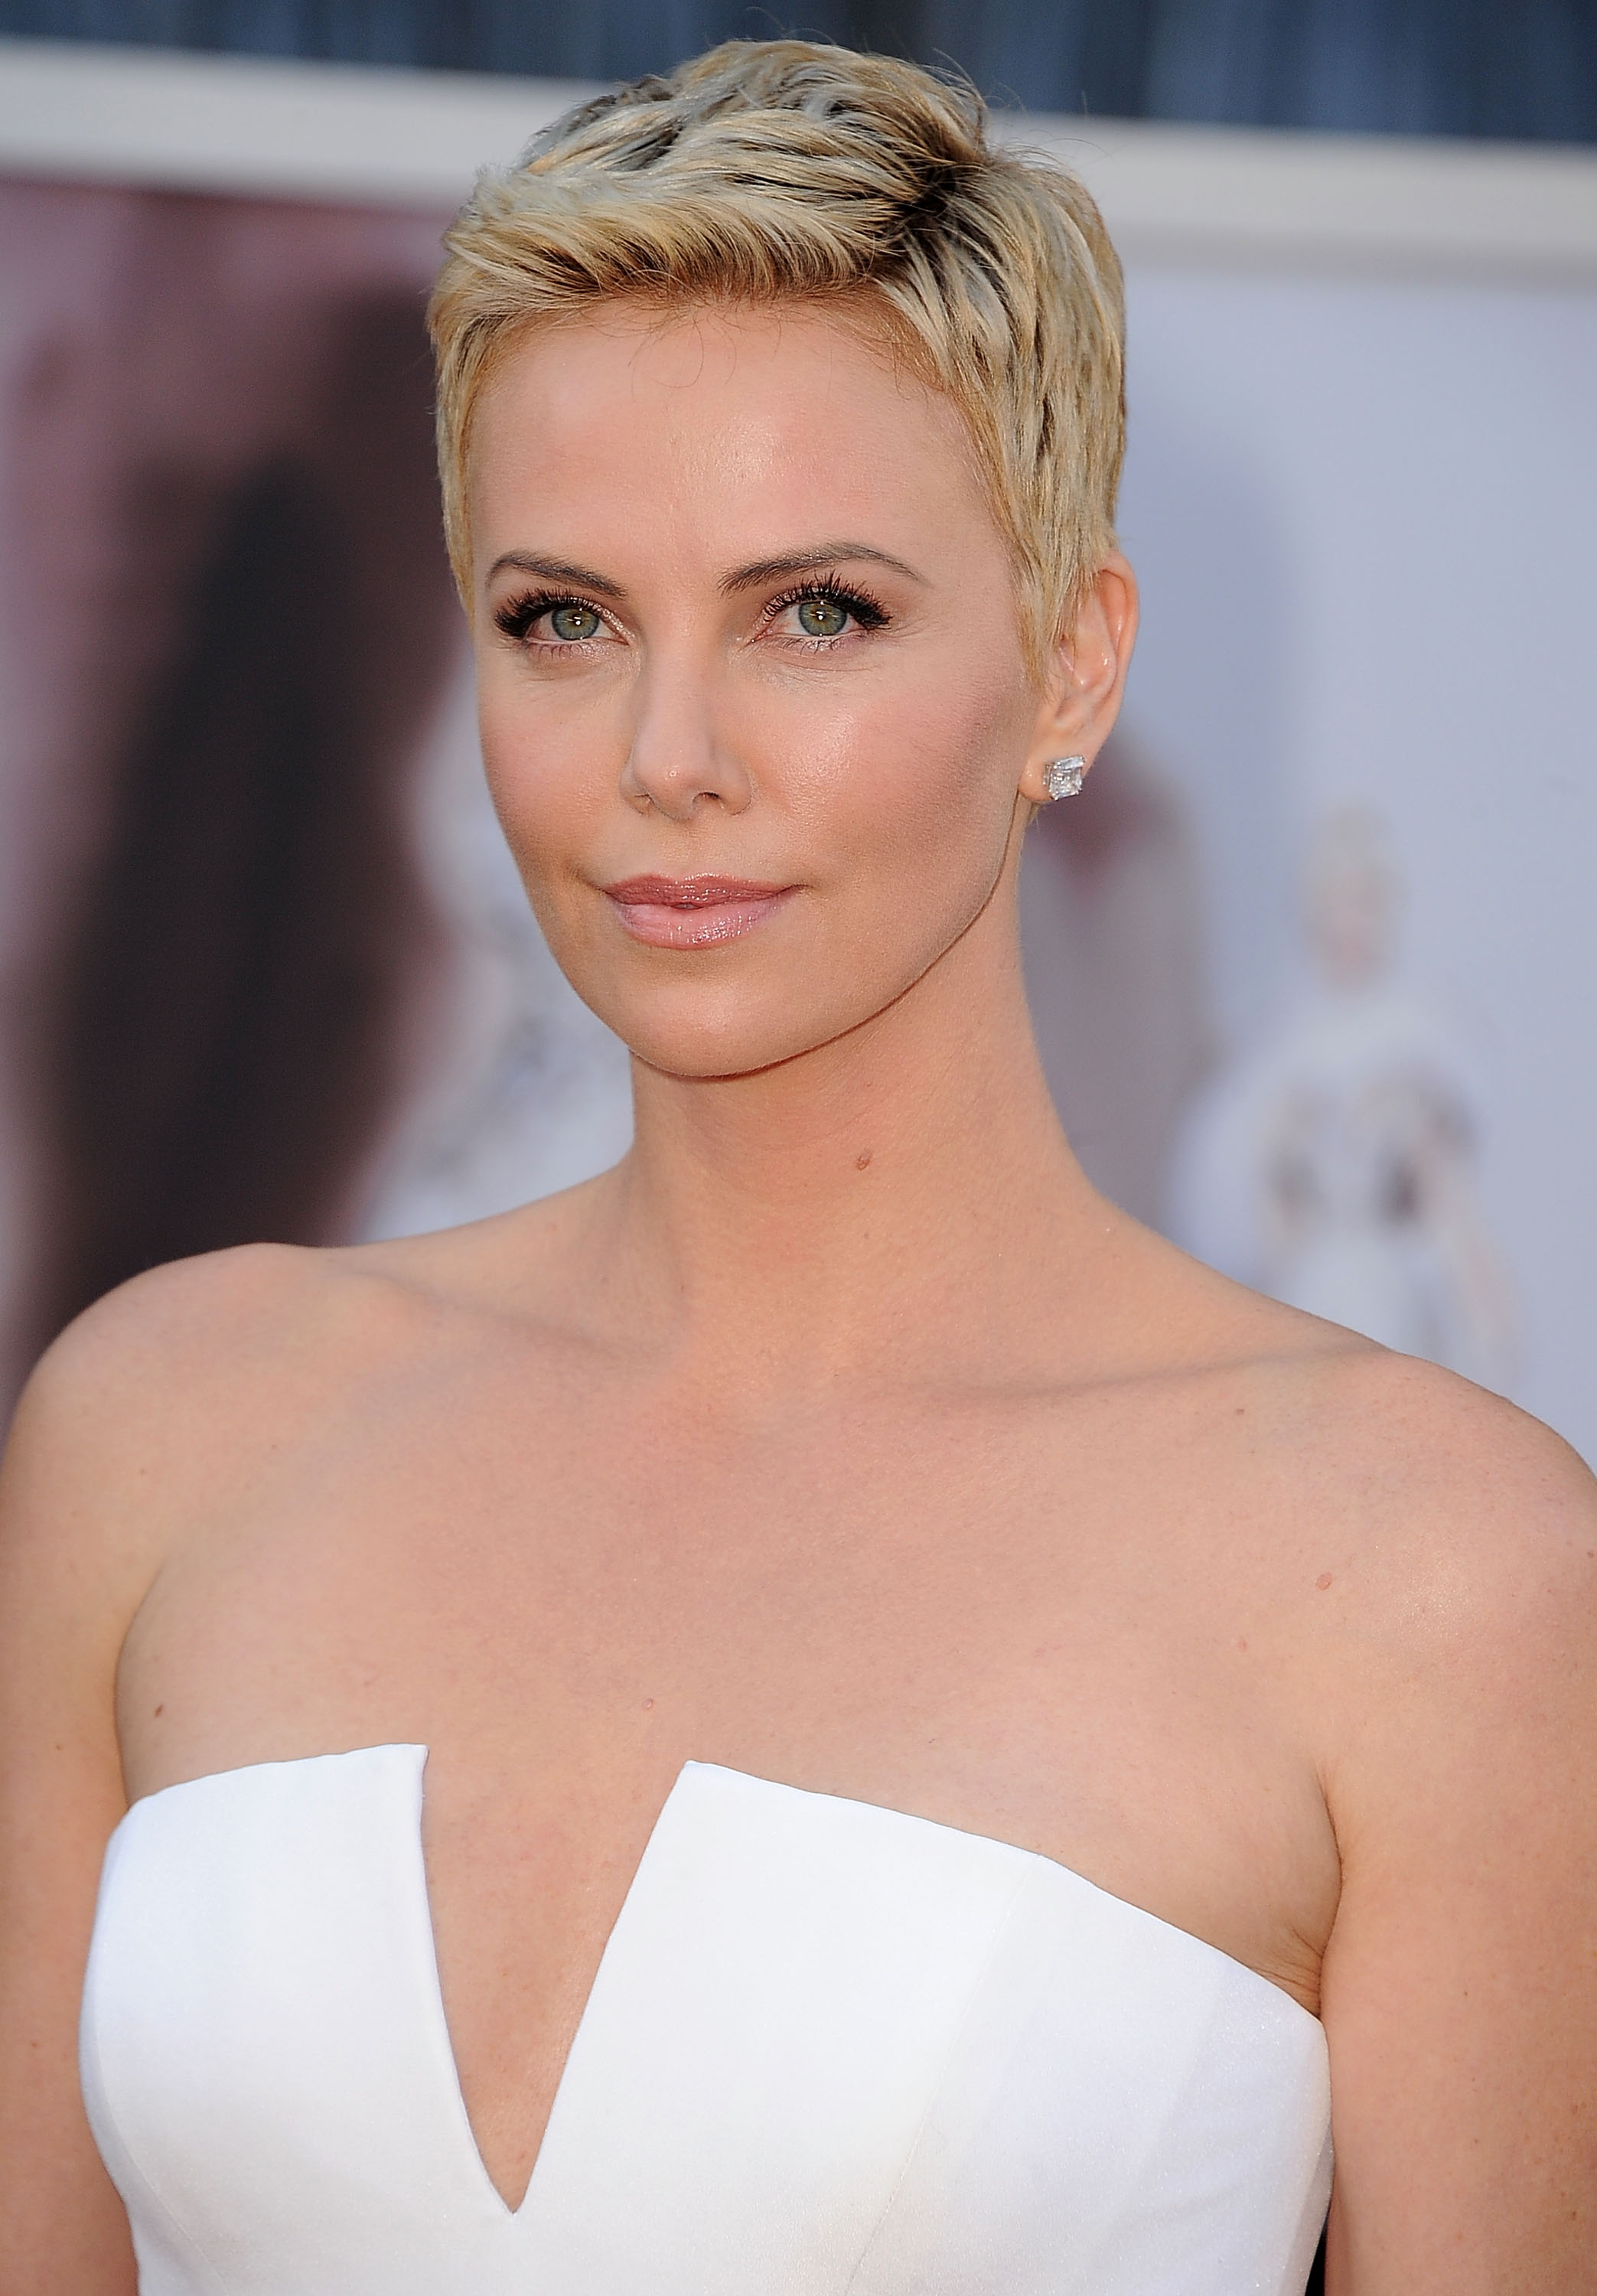 Best Short Pixie Cut Hairstyles Cute Pixie Haircuts for